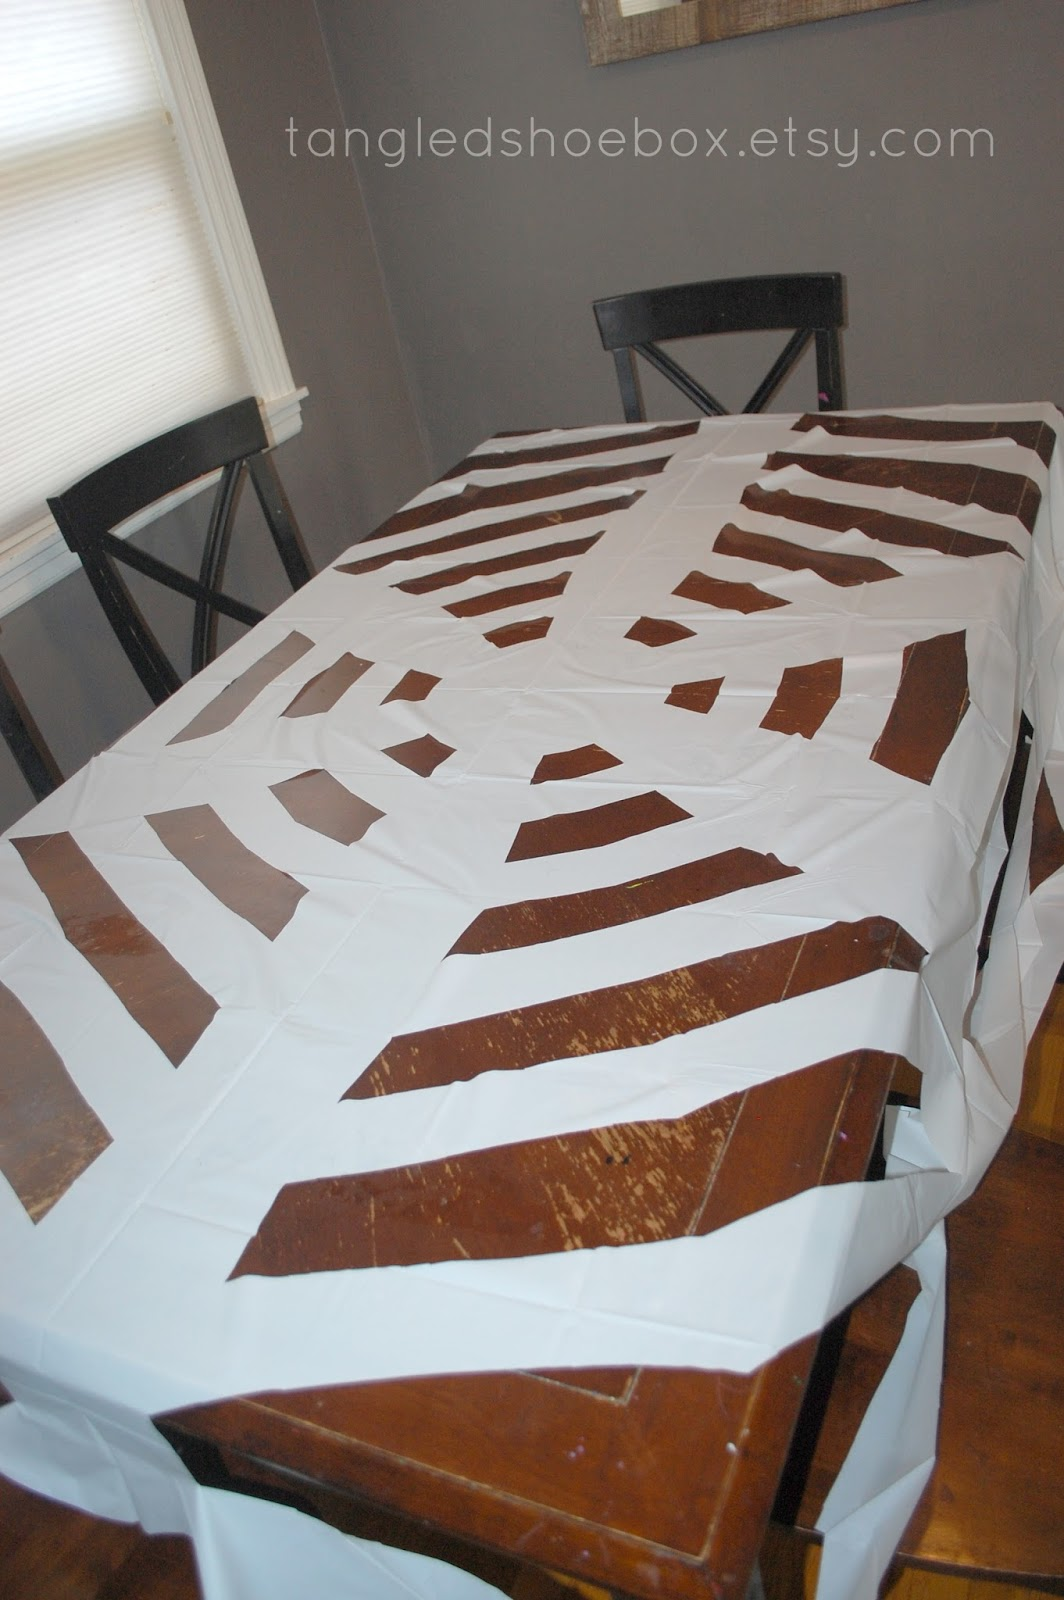 Tangled Shoebox Diy Spider Web Dollar Tree Round Tablecloth